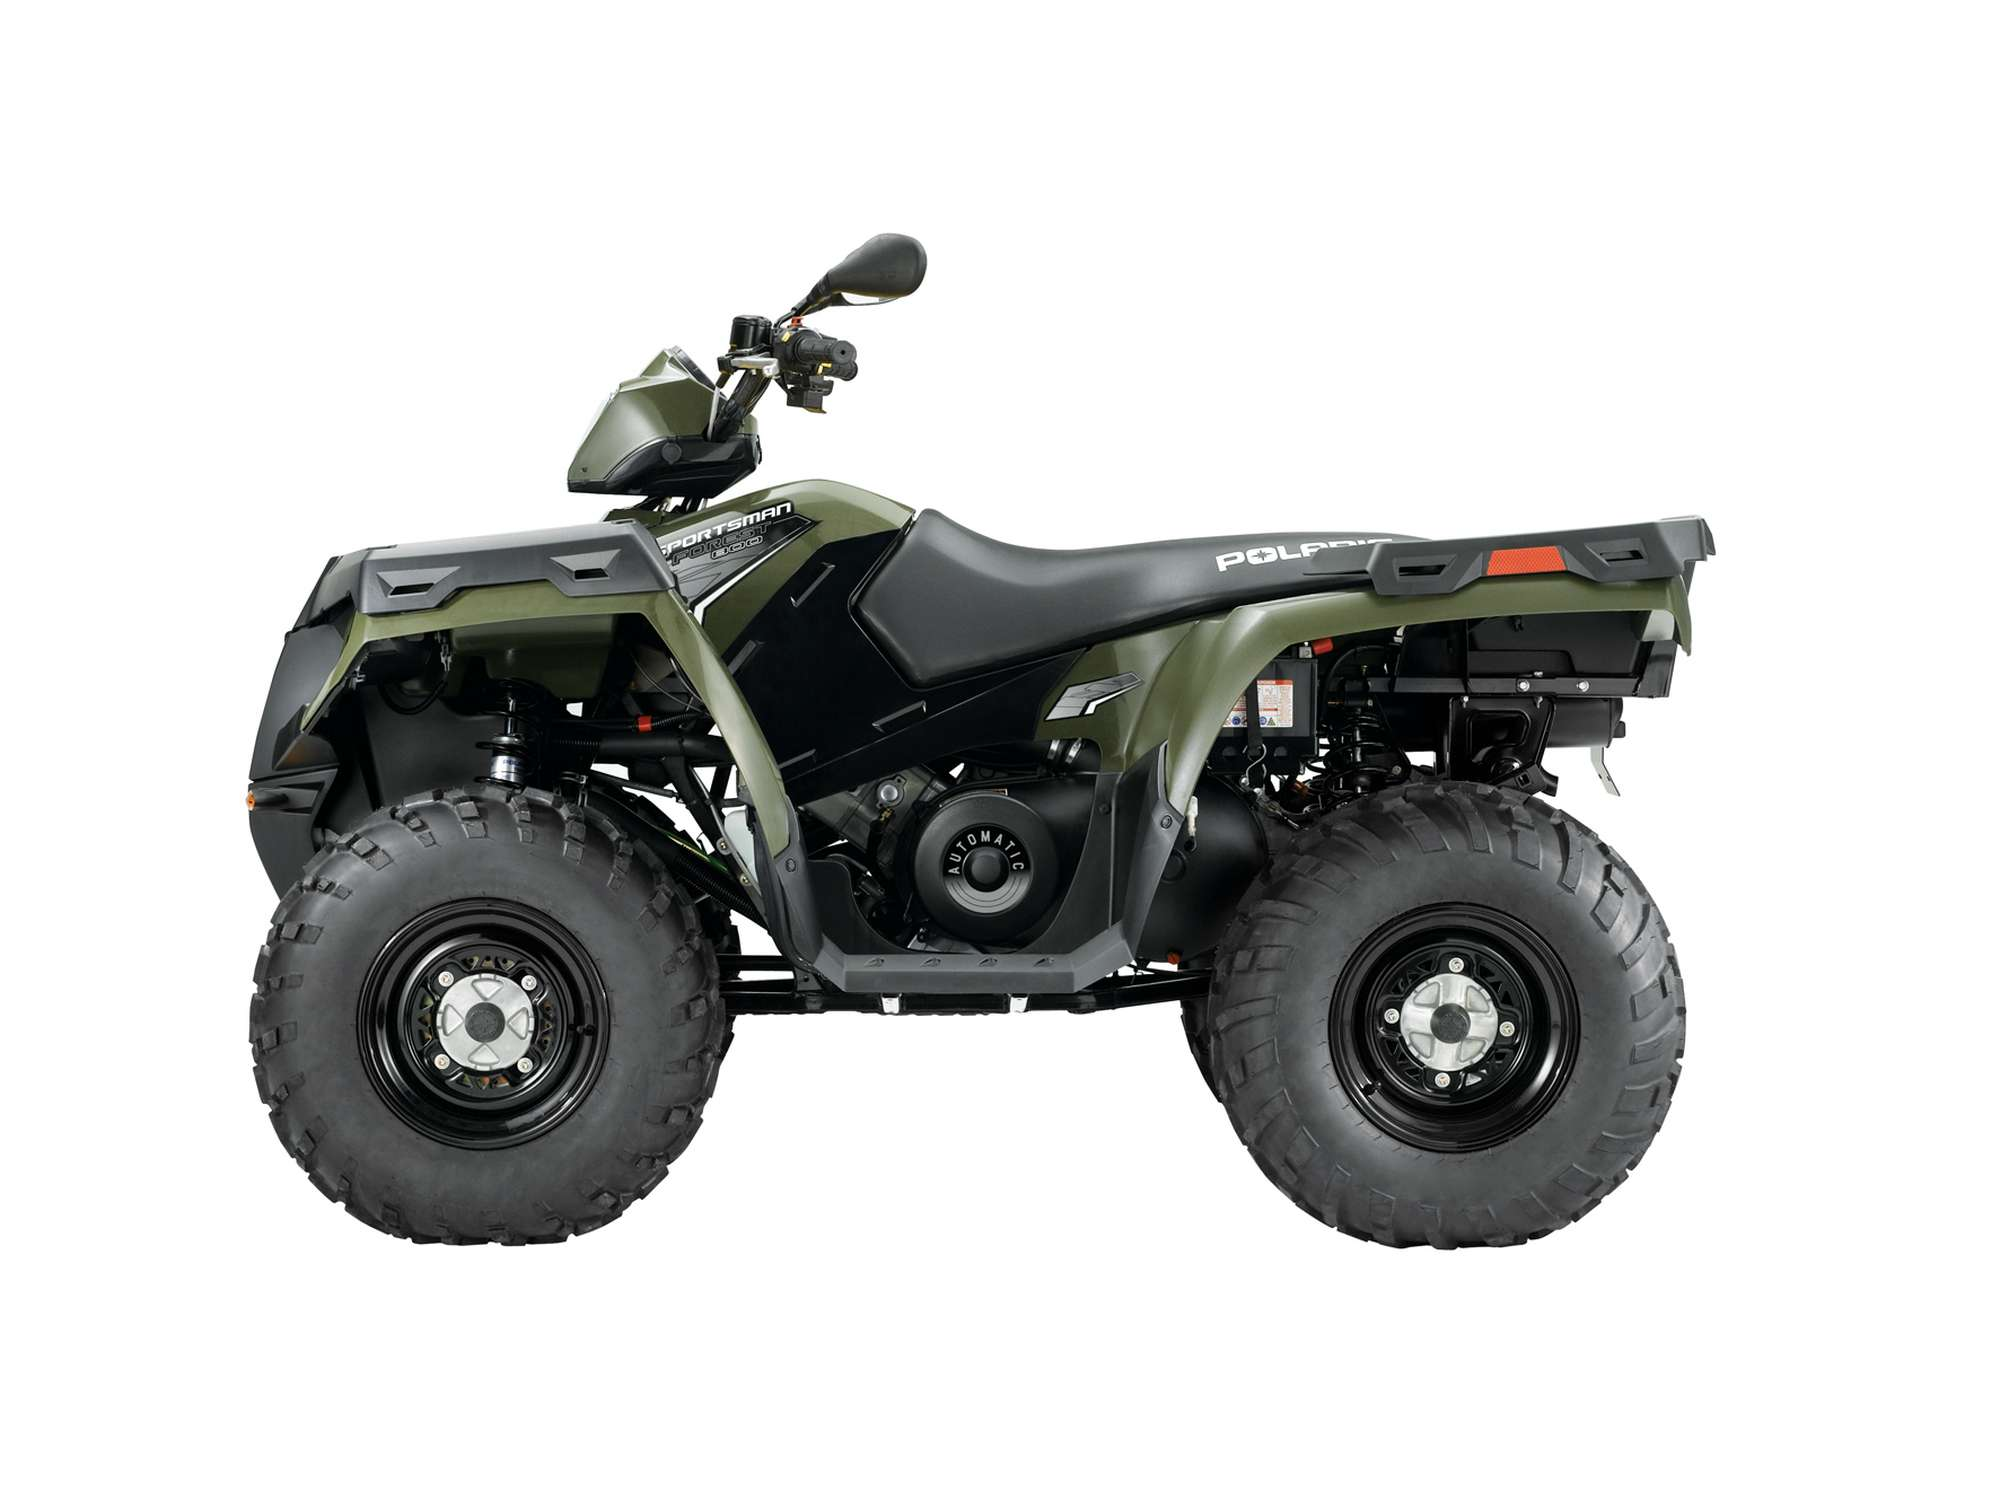 2004 Polaris Sportsman 500 Carburetor Diagram Electrical Wiring Ranger 700 Carberator Fuel Filter Get Free Image Carb